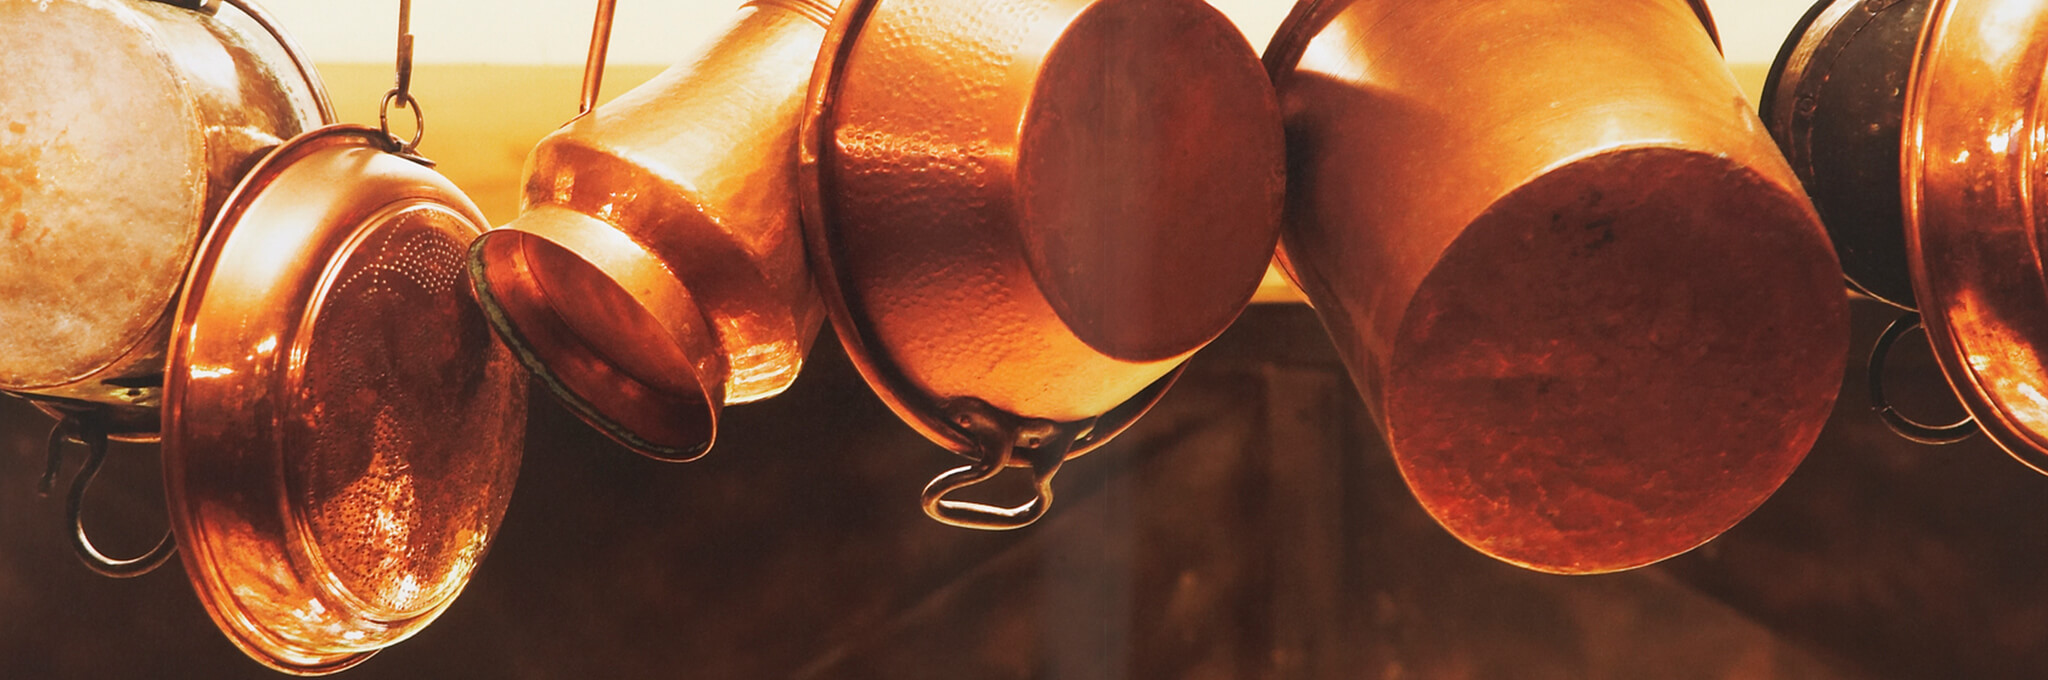 Copper pots and pans hanging from hooks